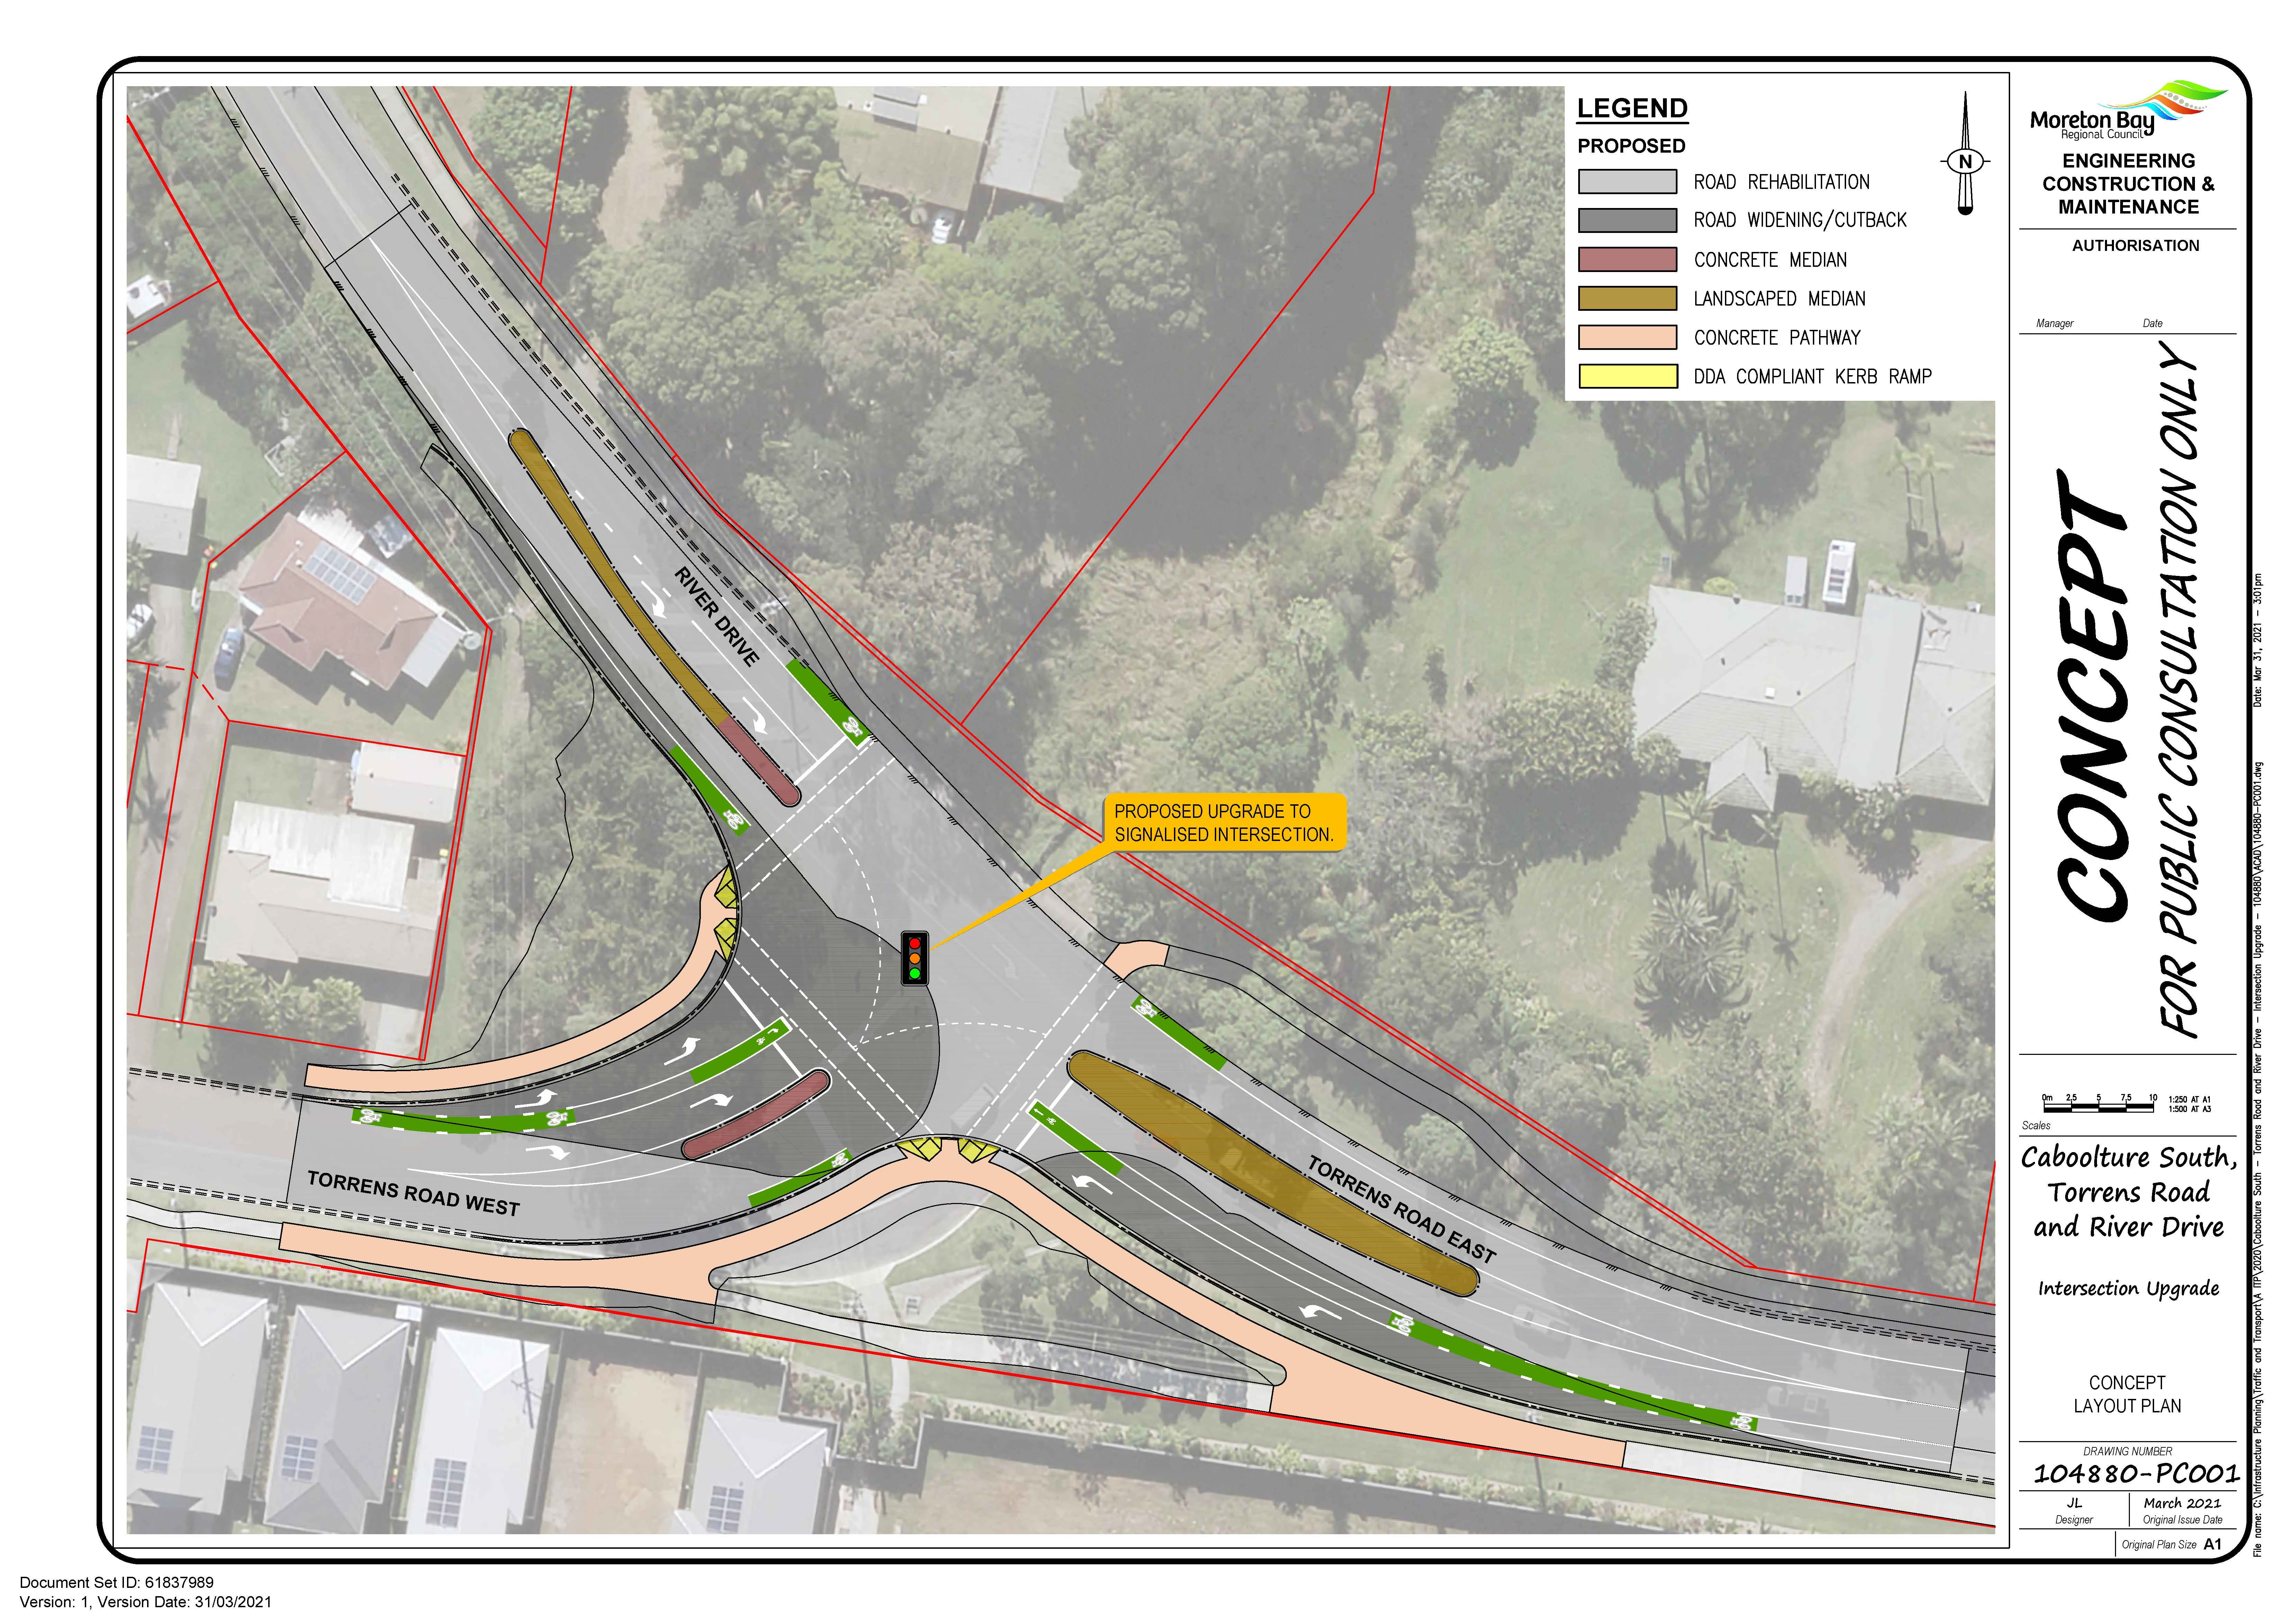 Concept Plan - Intersection of Torrens Road and River Drive, Caboolture